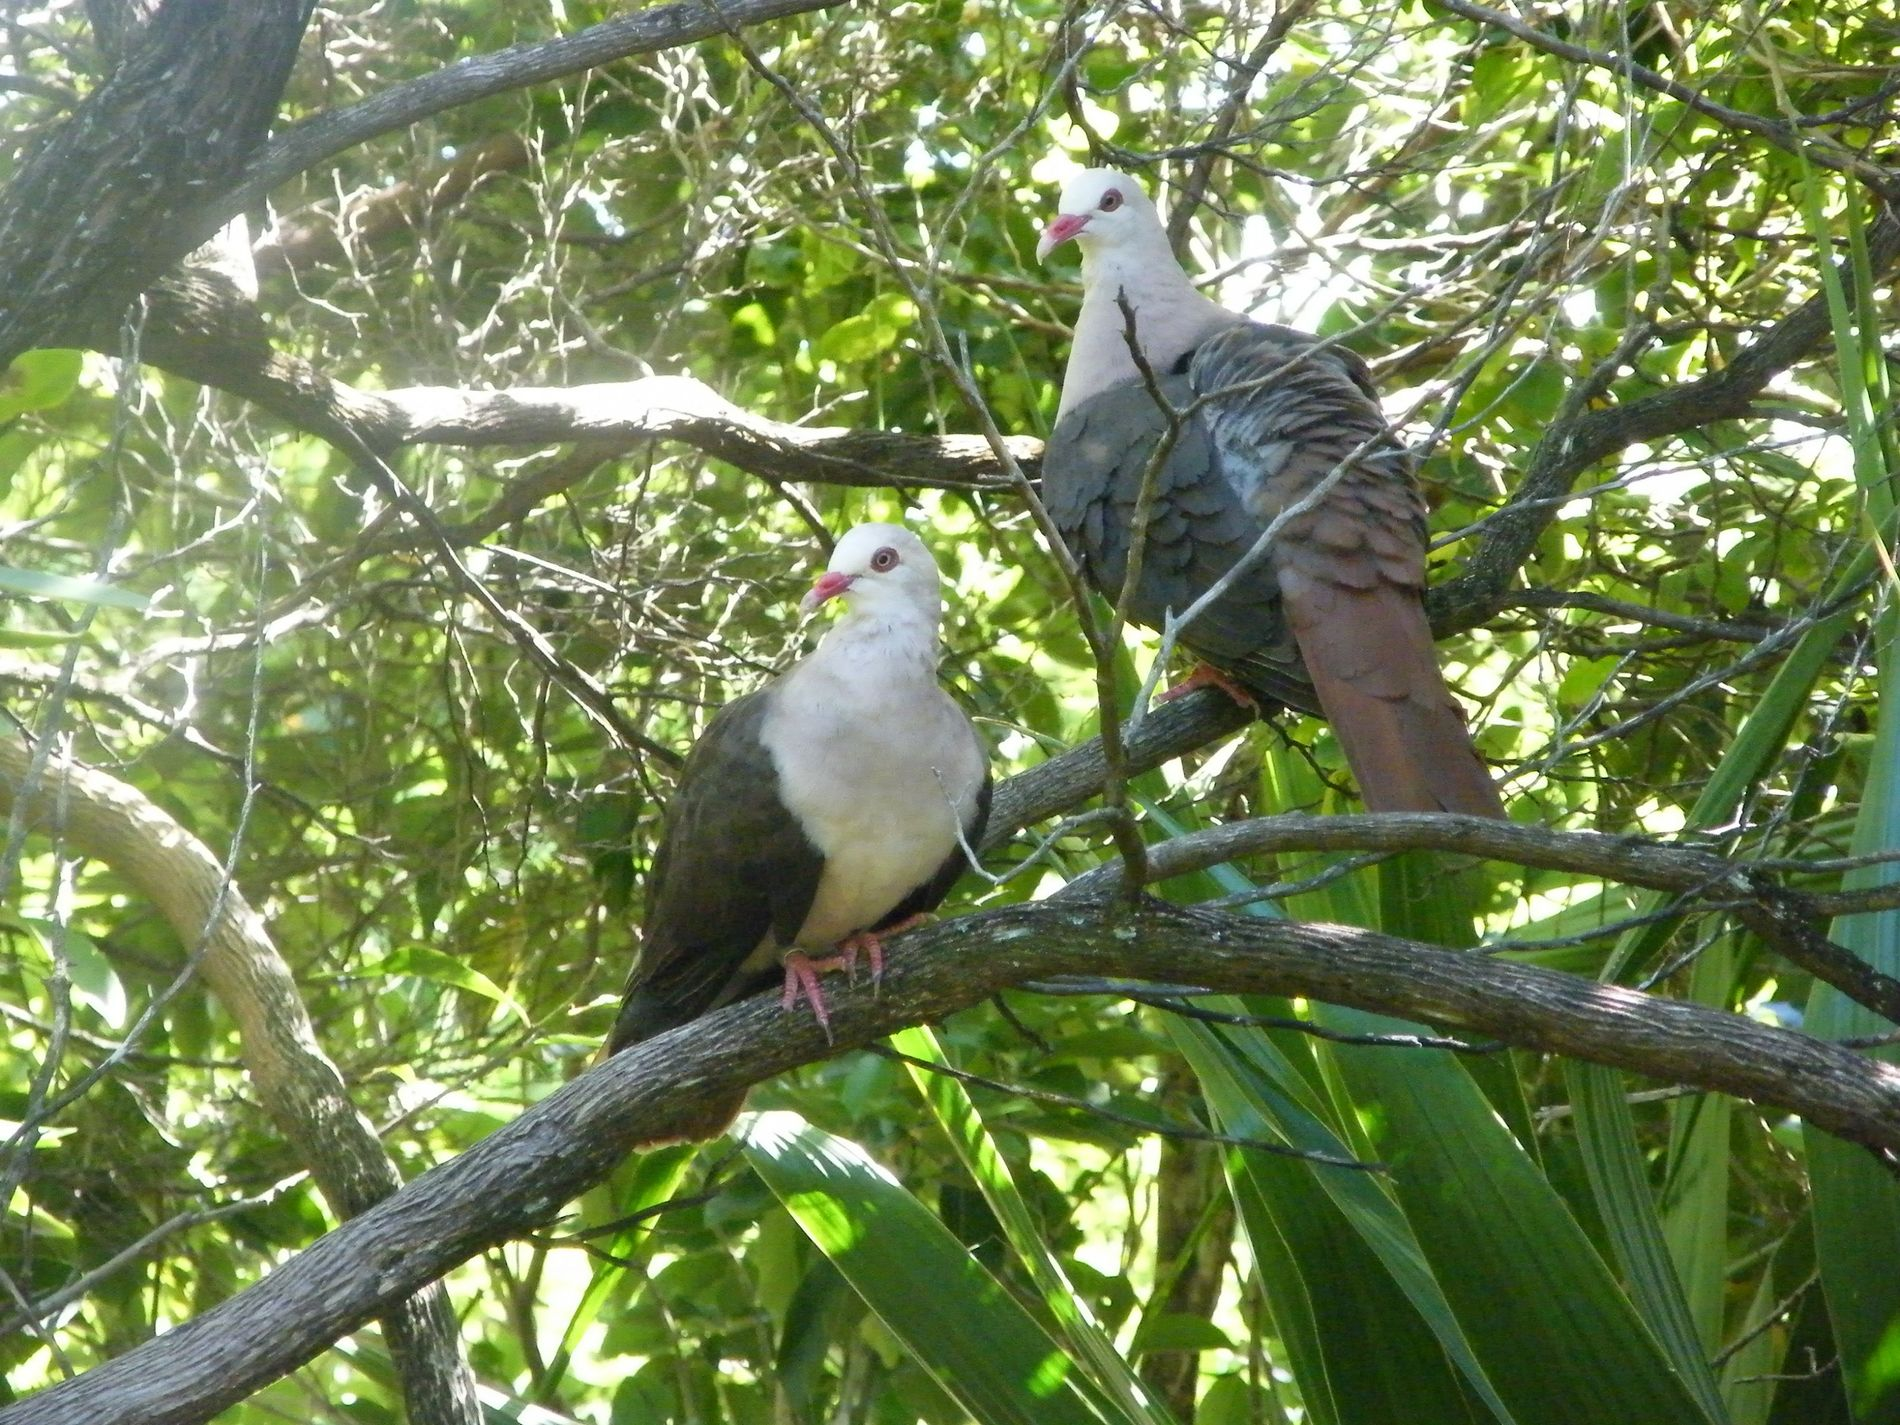 In 1990 there were just 9 pink pigeons ('Nesoenas mayeri') in the wild. A major conservation ...